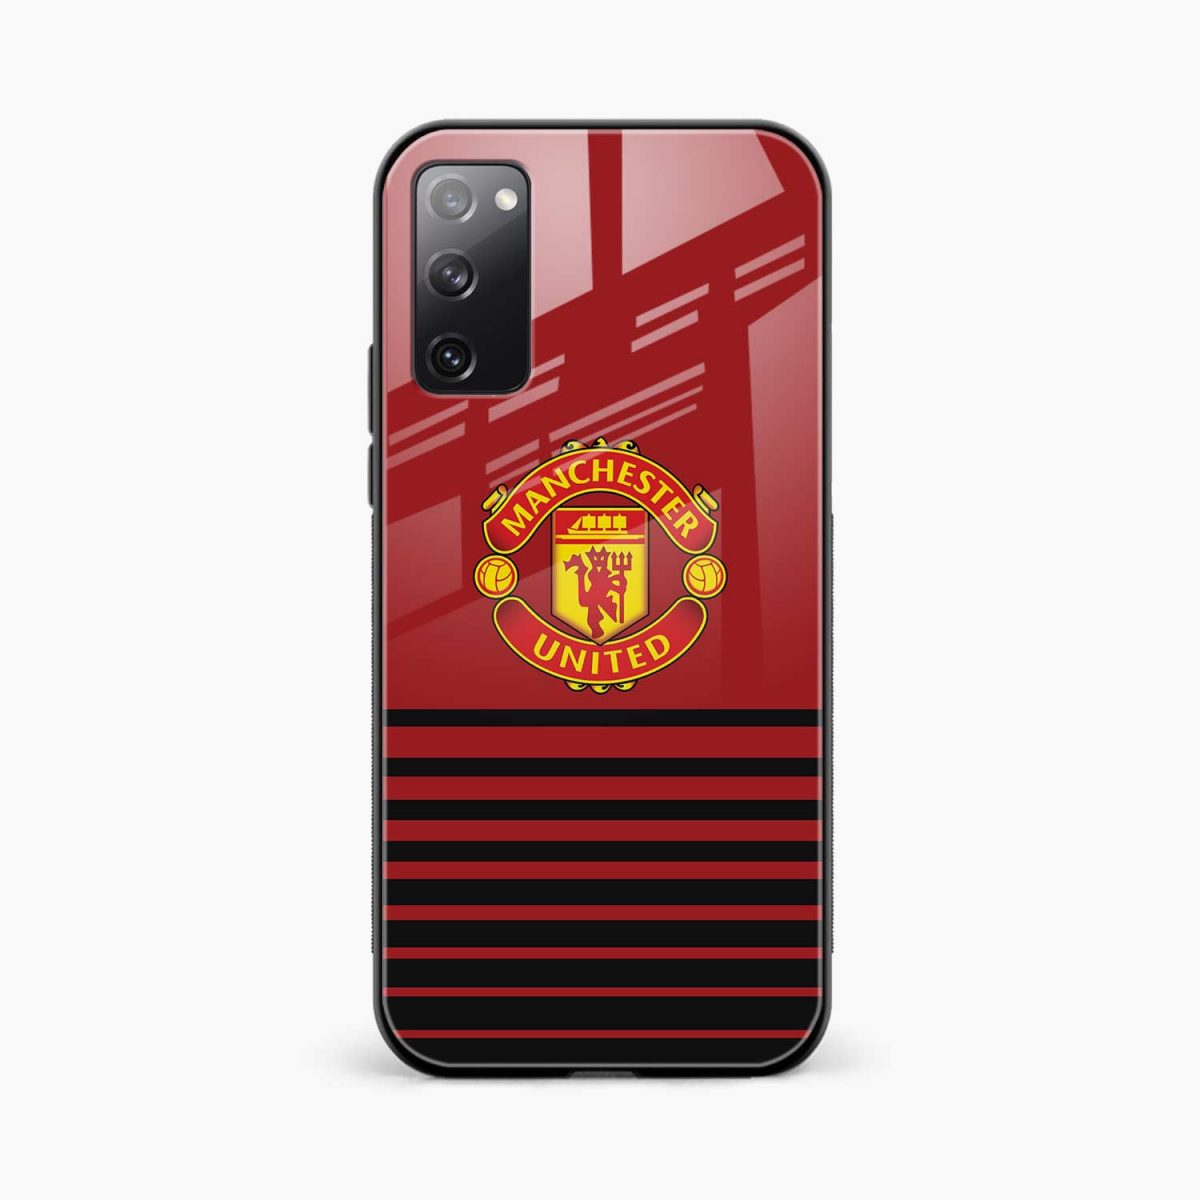 manchester united front view samsung galaxy s20 fe back cover